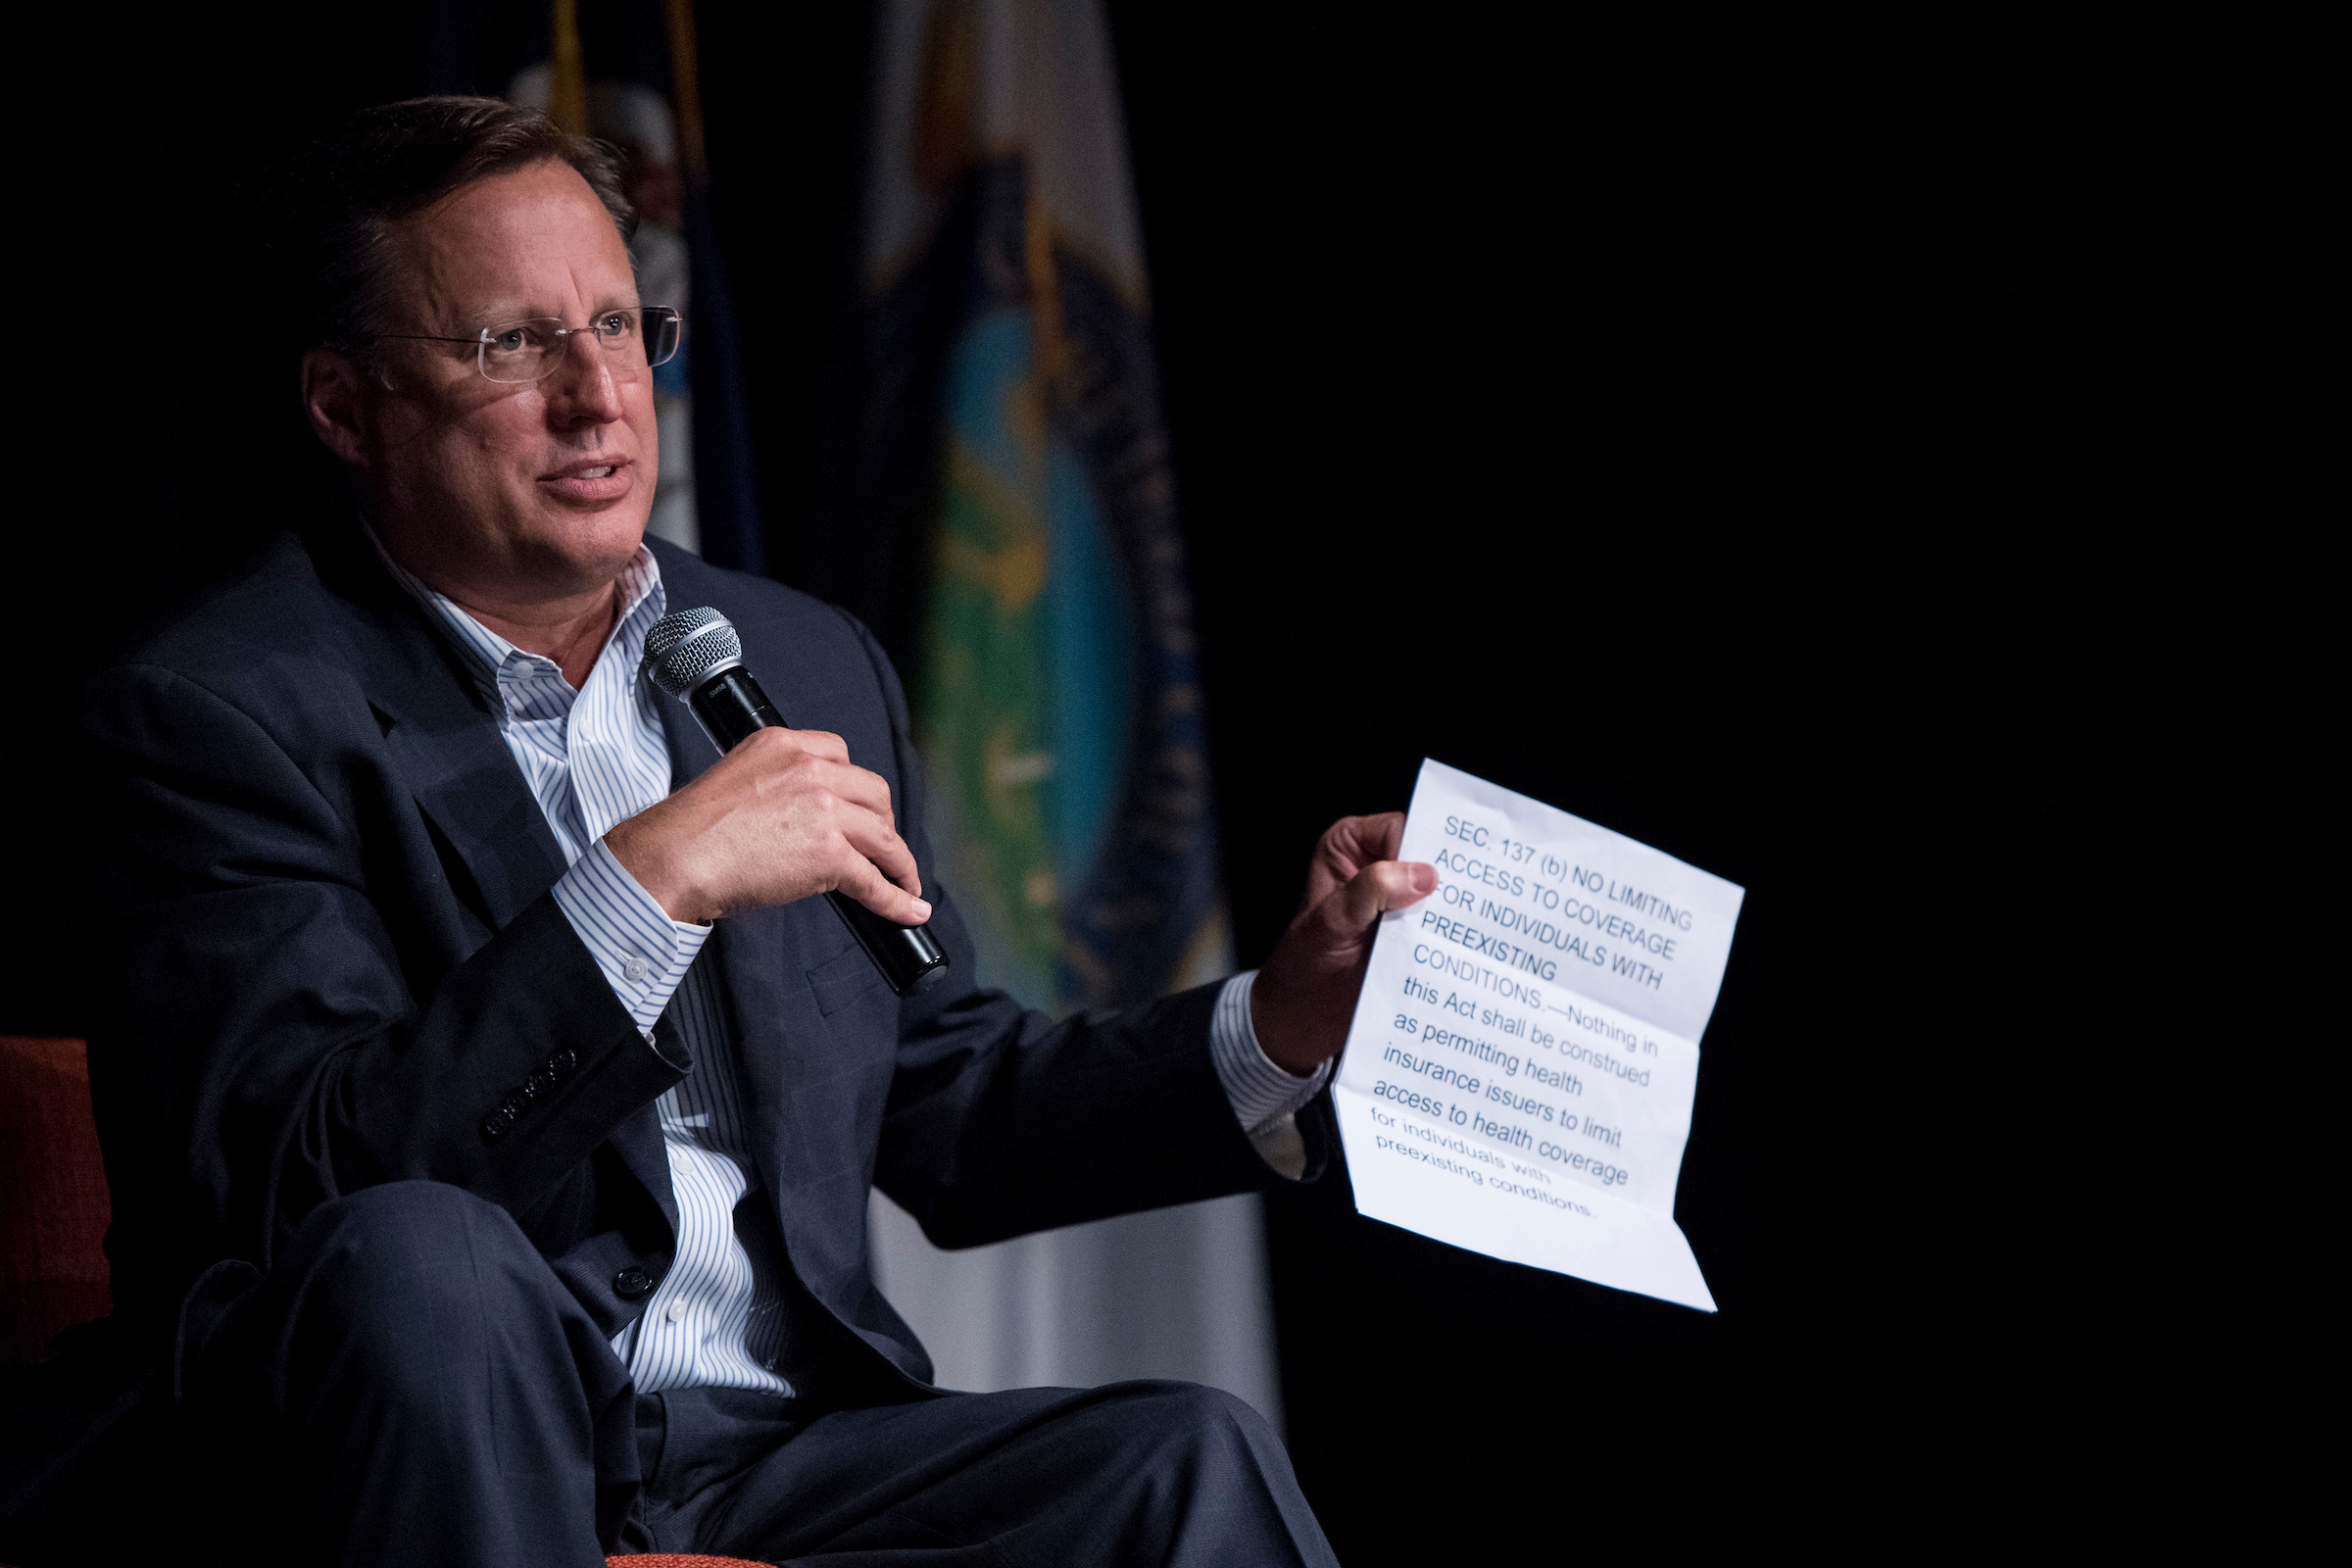 Virginia Rep. Dave Brat holds a town hall meeting in Midlothian, Virginia, on May 9. (Bill Clark/CQ Roll Call)